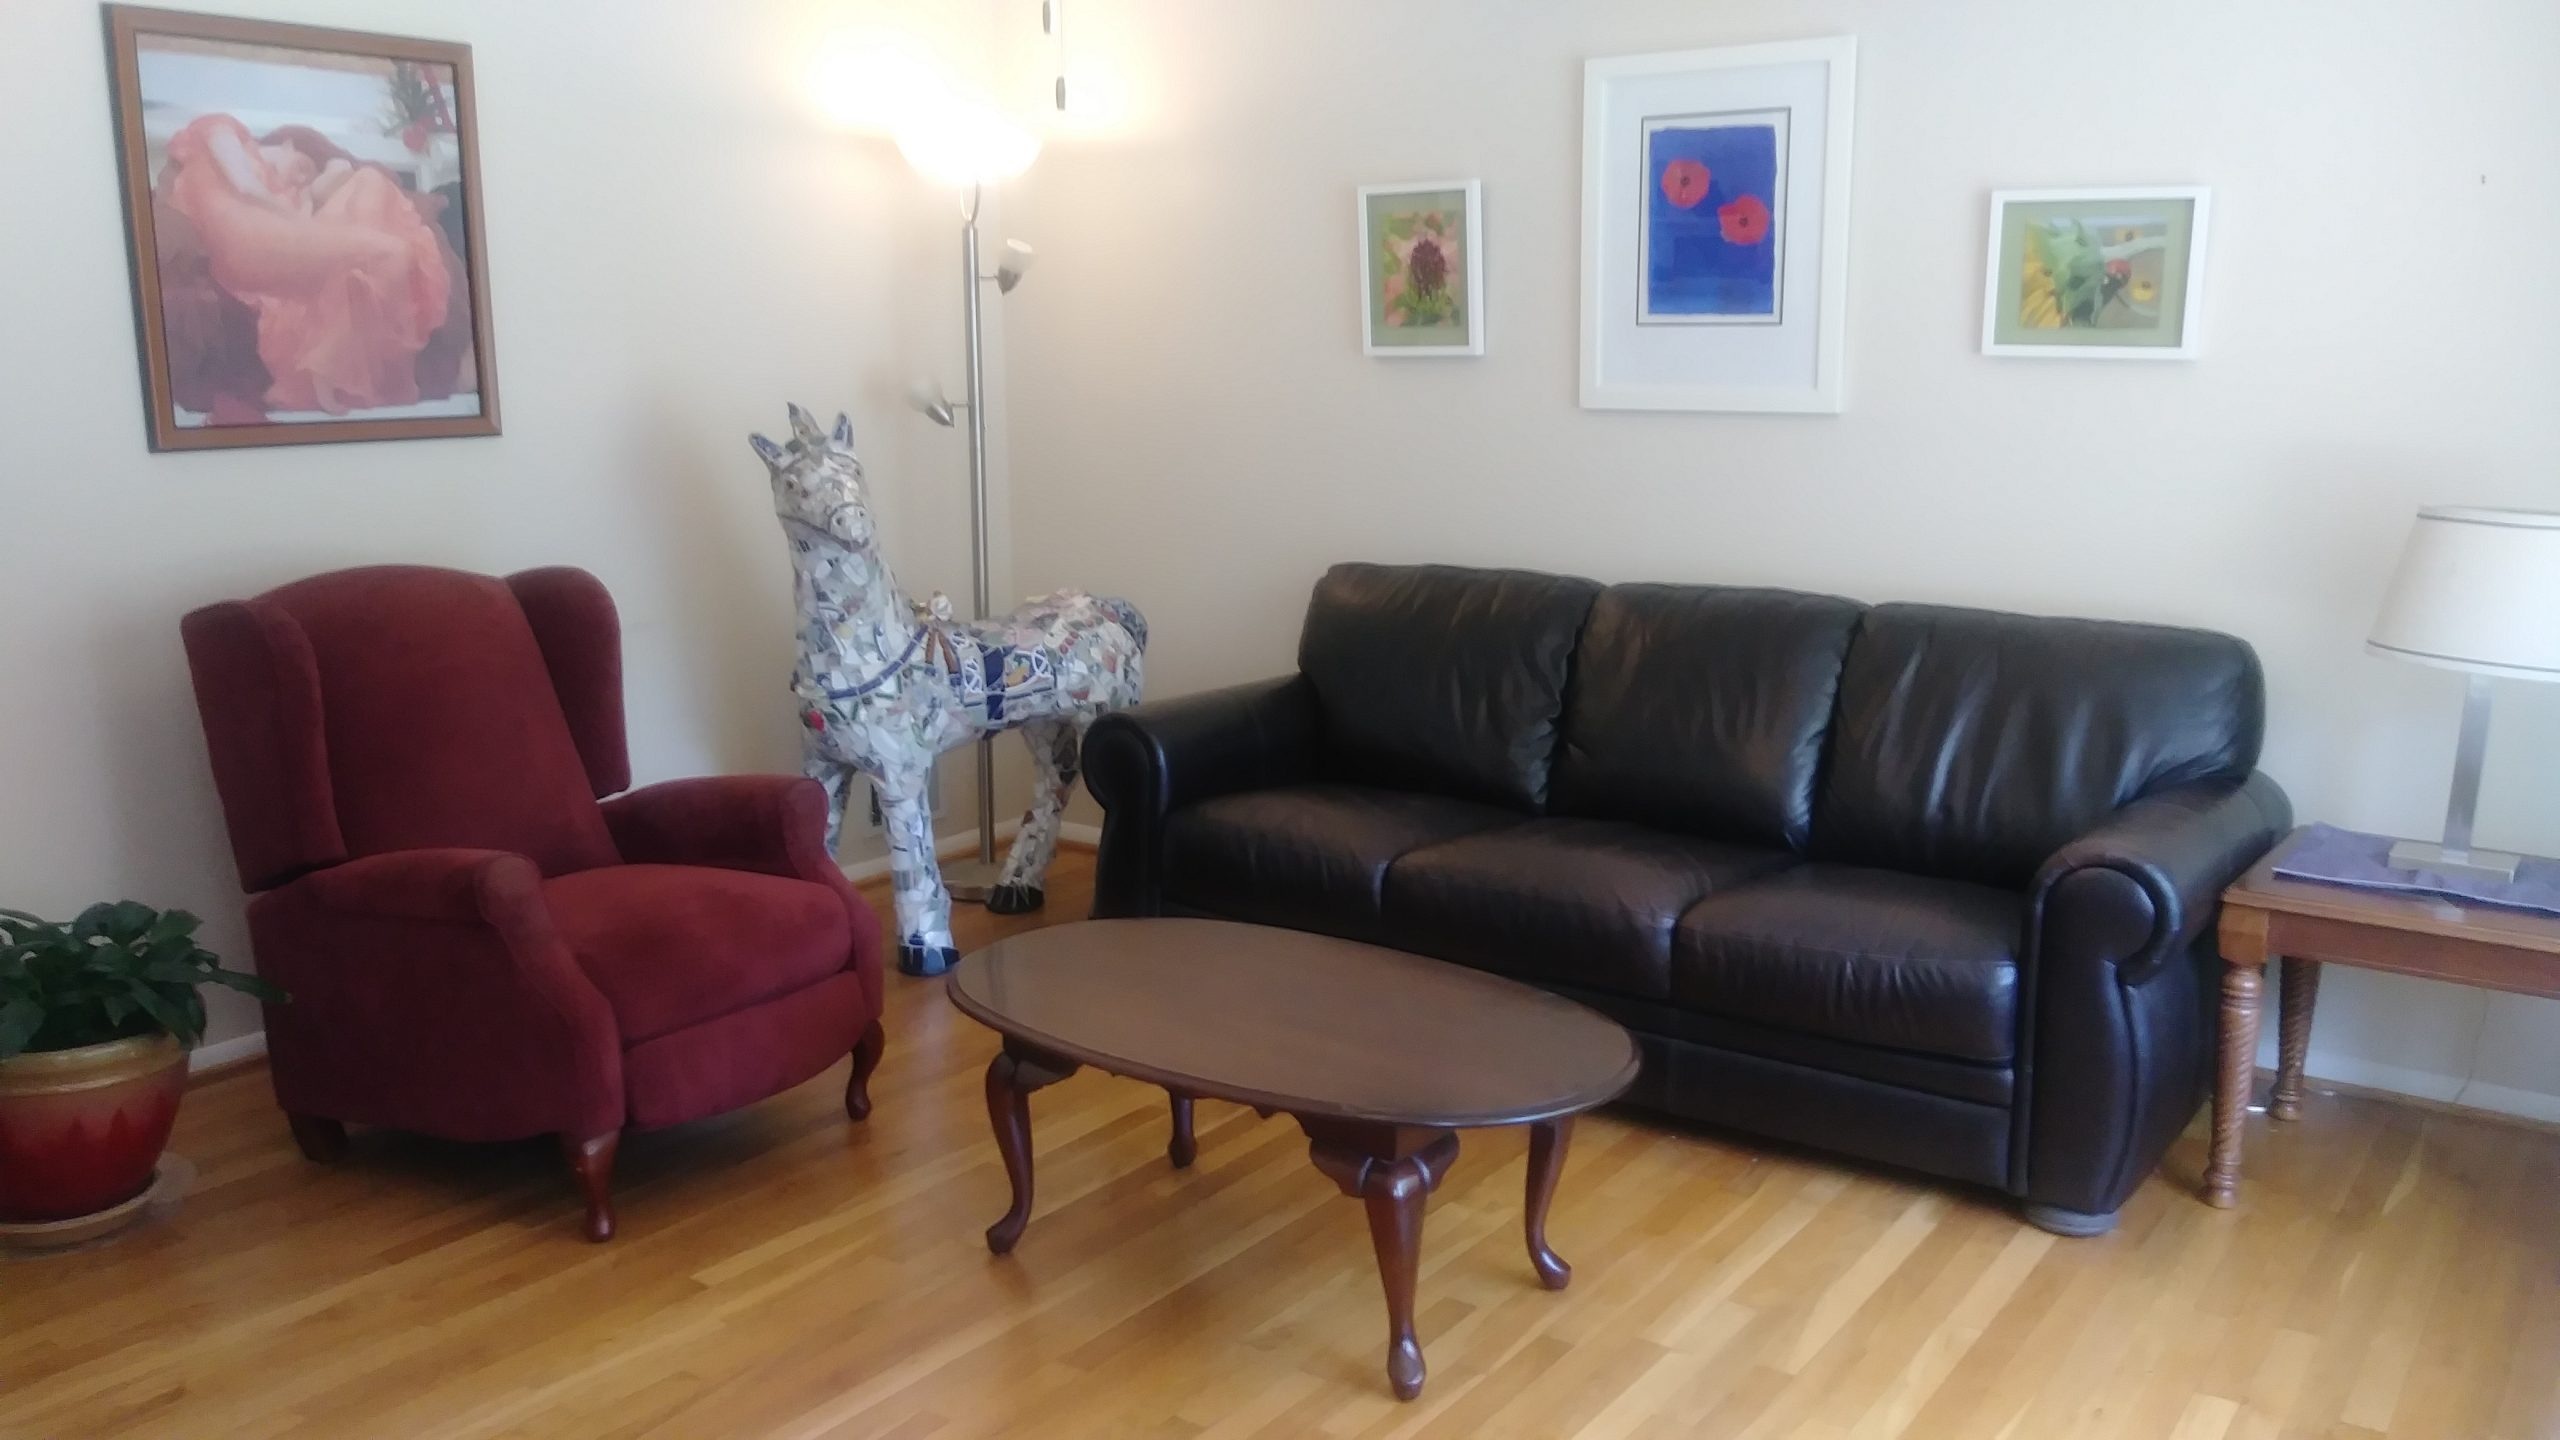 Walk into spacious and bright living room